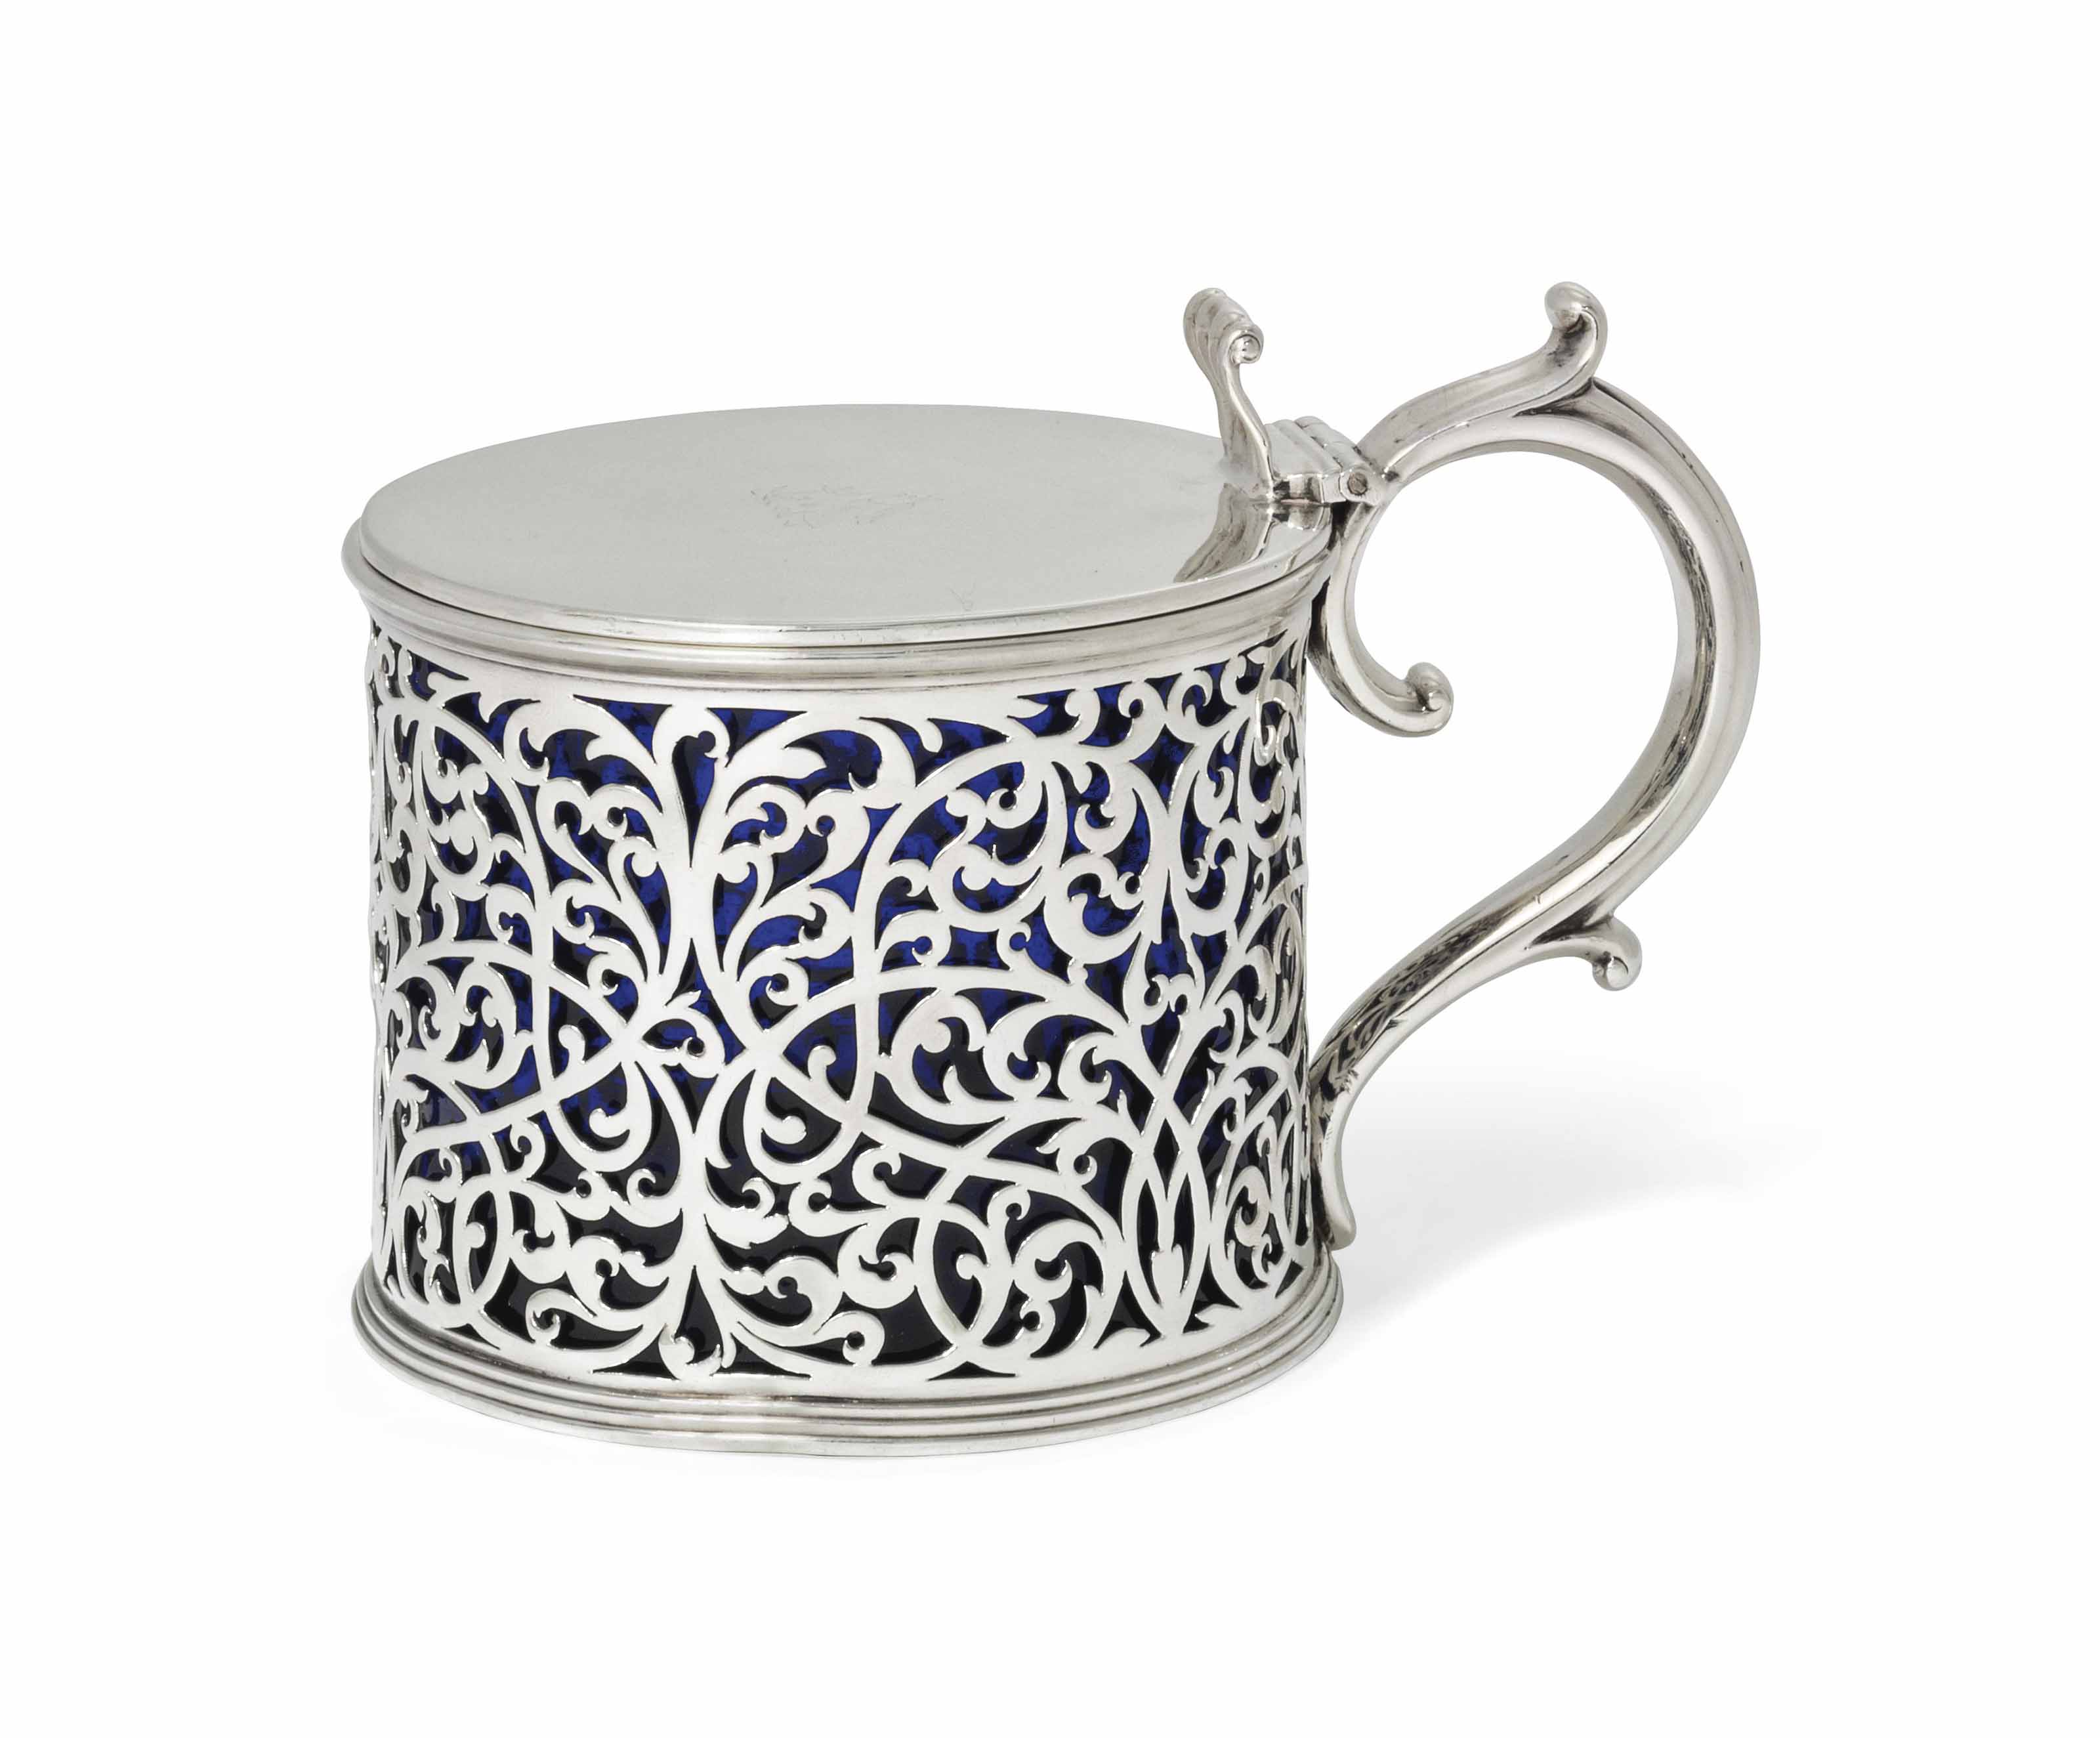 A LARGE WILLIAM IV SILVER MUSTARD OR PRESERVE-POT